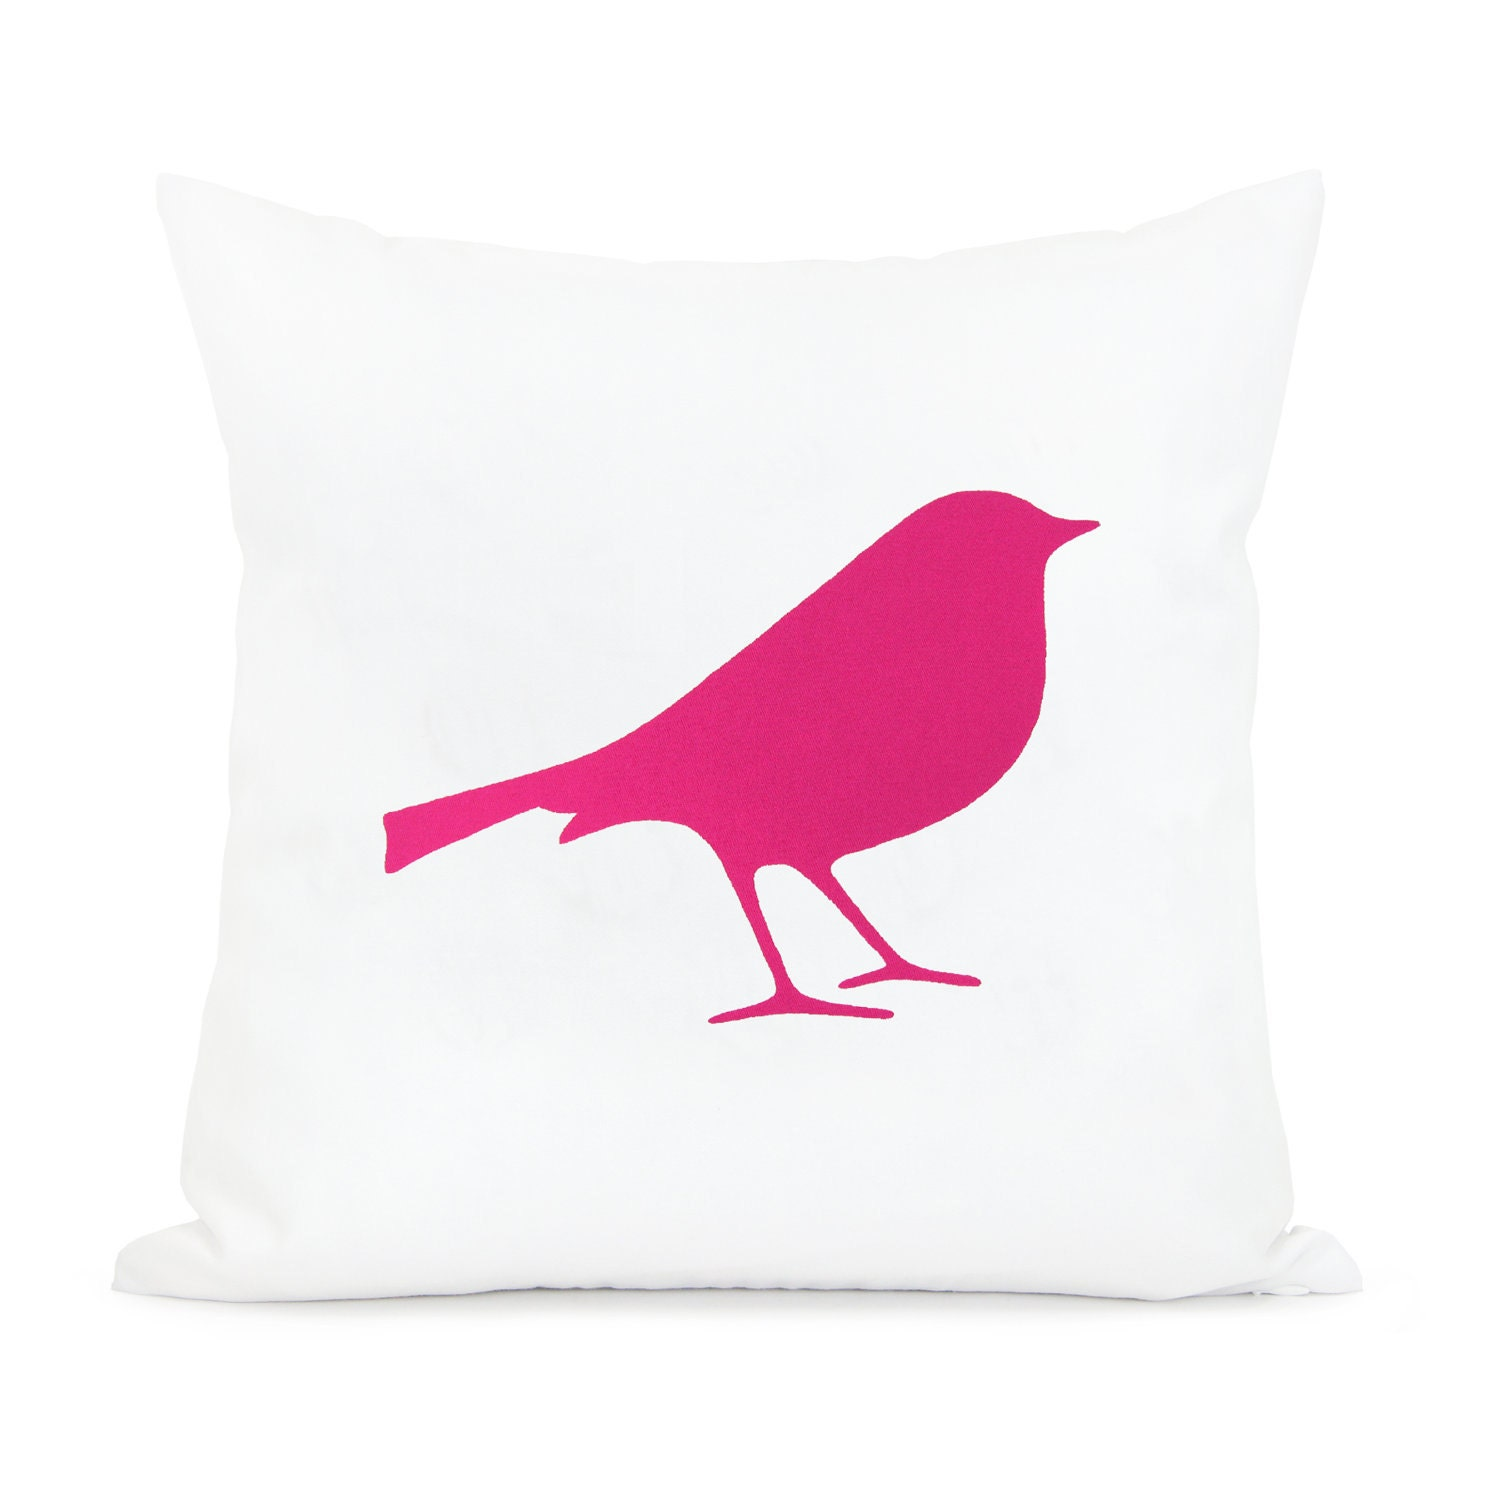 16x16 bird pillow cover - Pink and white pillow case - Romantic pillow - Decorative throw pillow cover - Shabby chic home decor - ClassicByNature